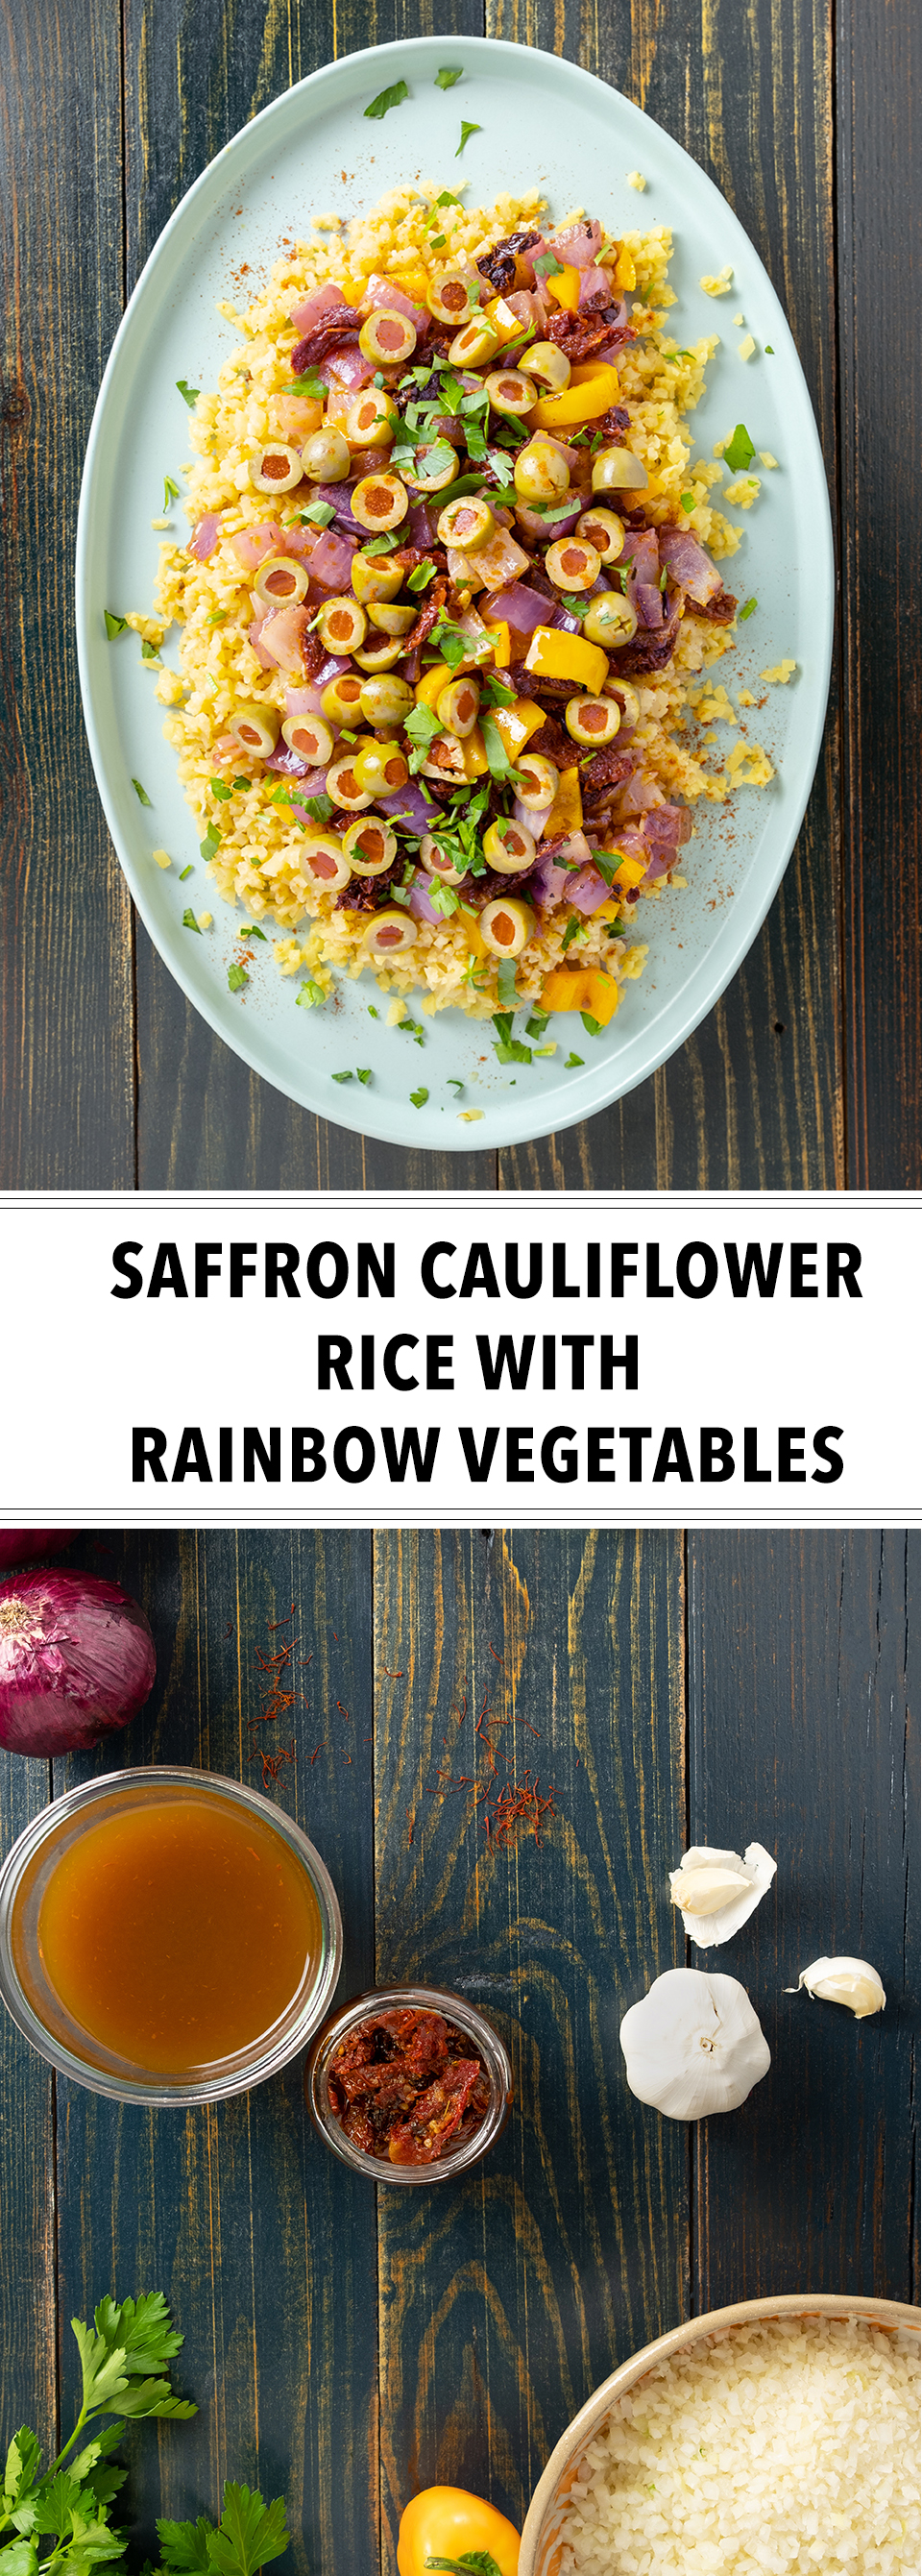 JodiLoves_Retouching_Brilliant_Pixel_Imaging-Saffron Cauliflower Rice with Rainbow Vegetables.jpg